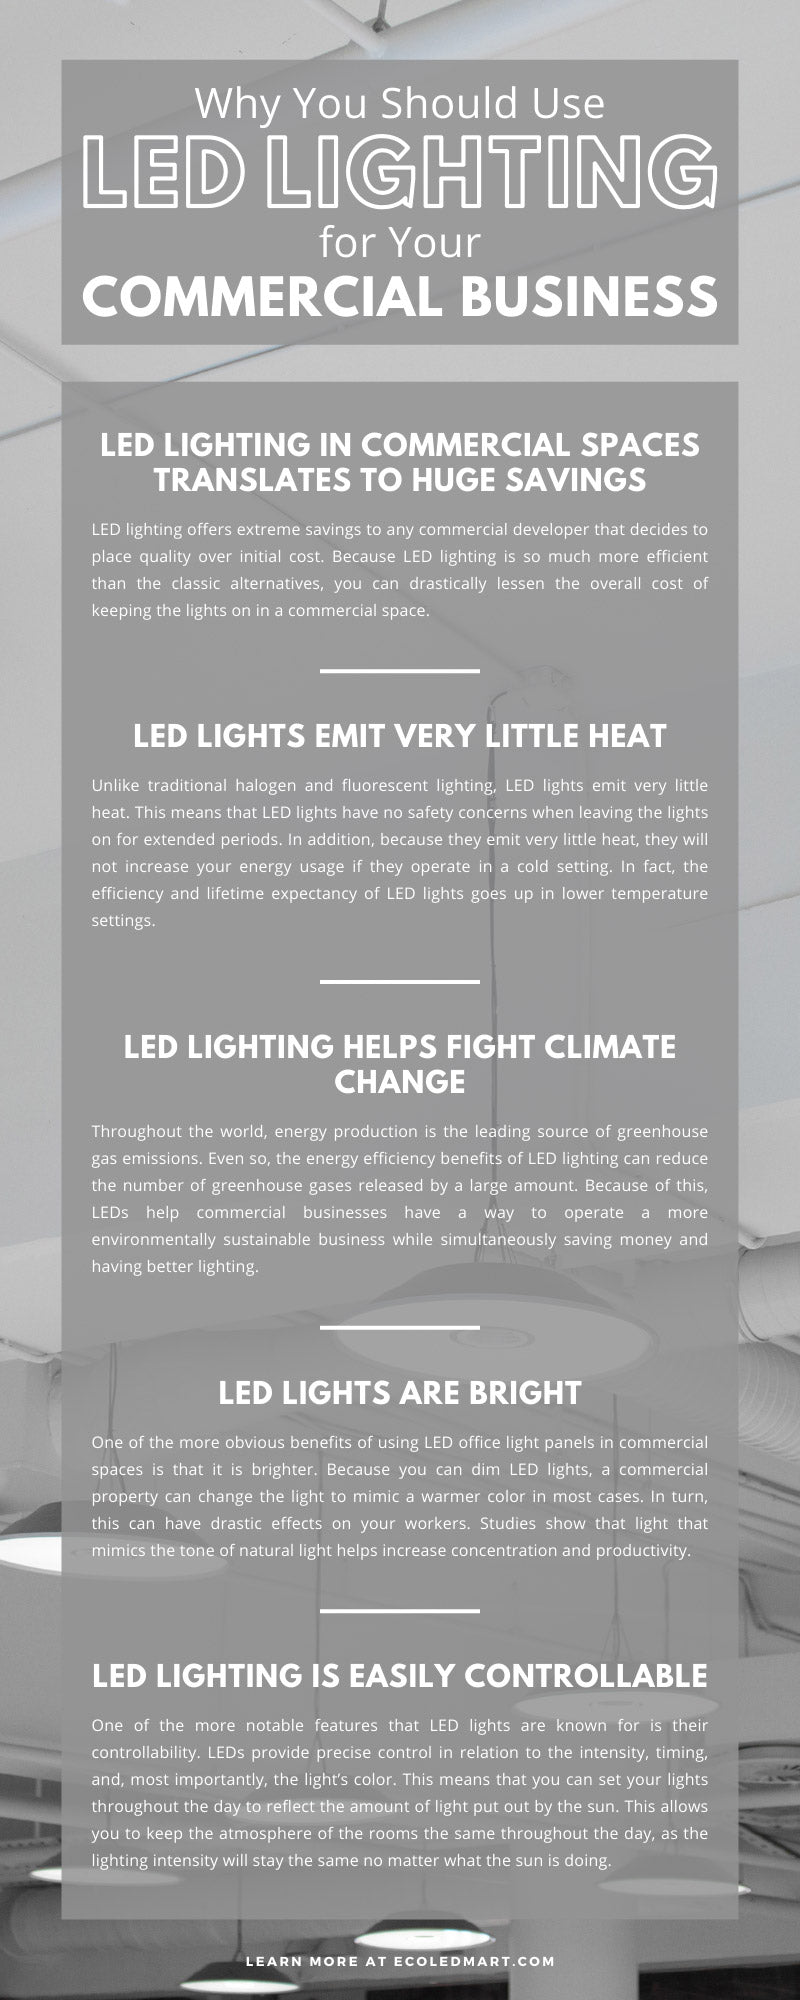 Why You Should Use LED Lighting for Your Commercial Business